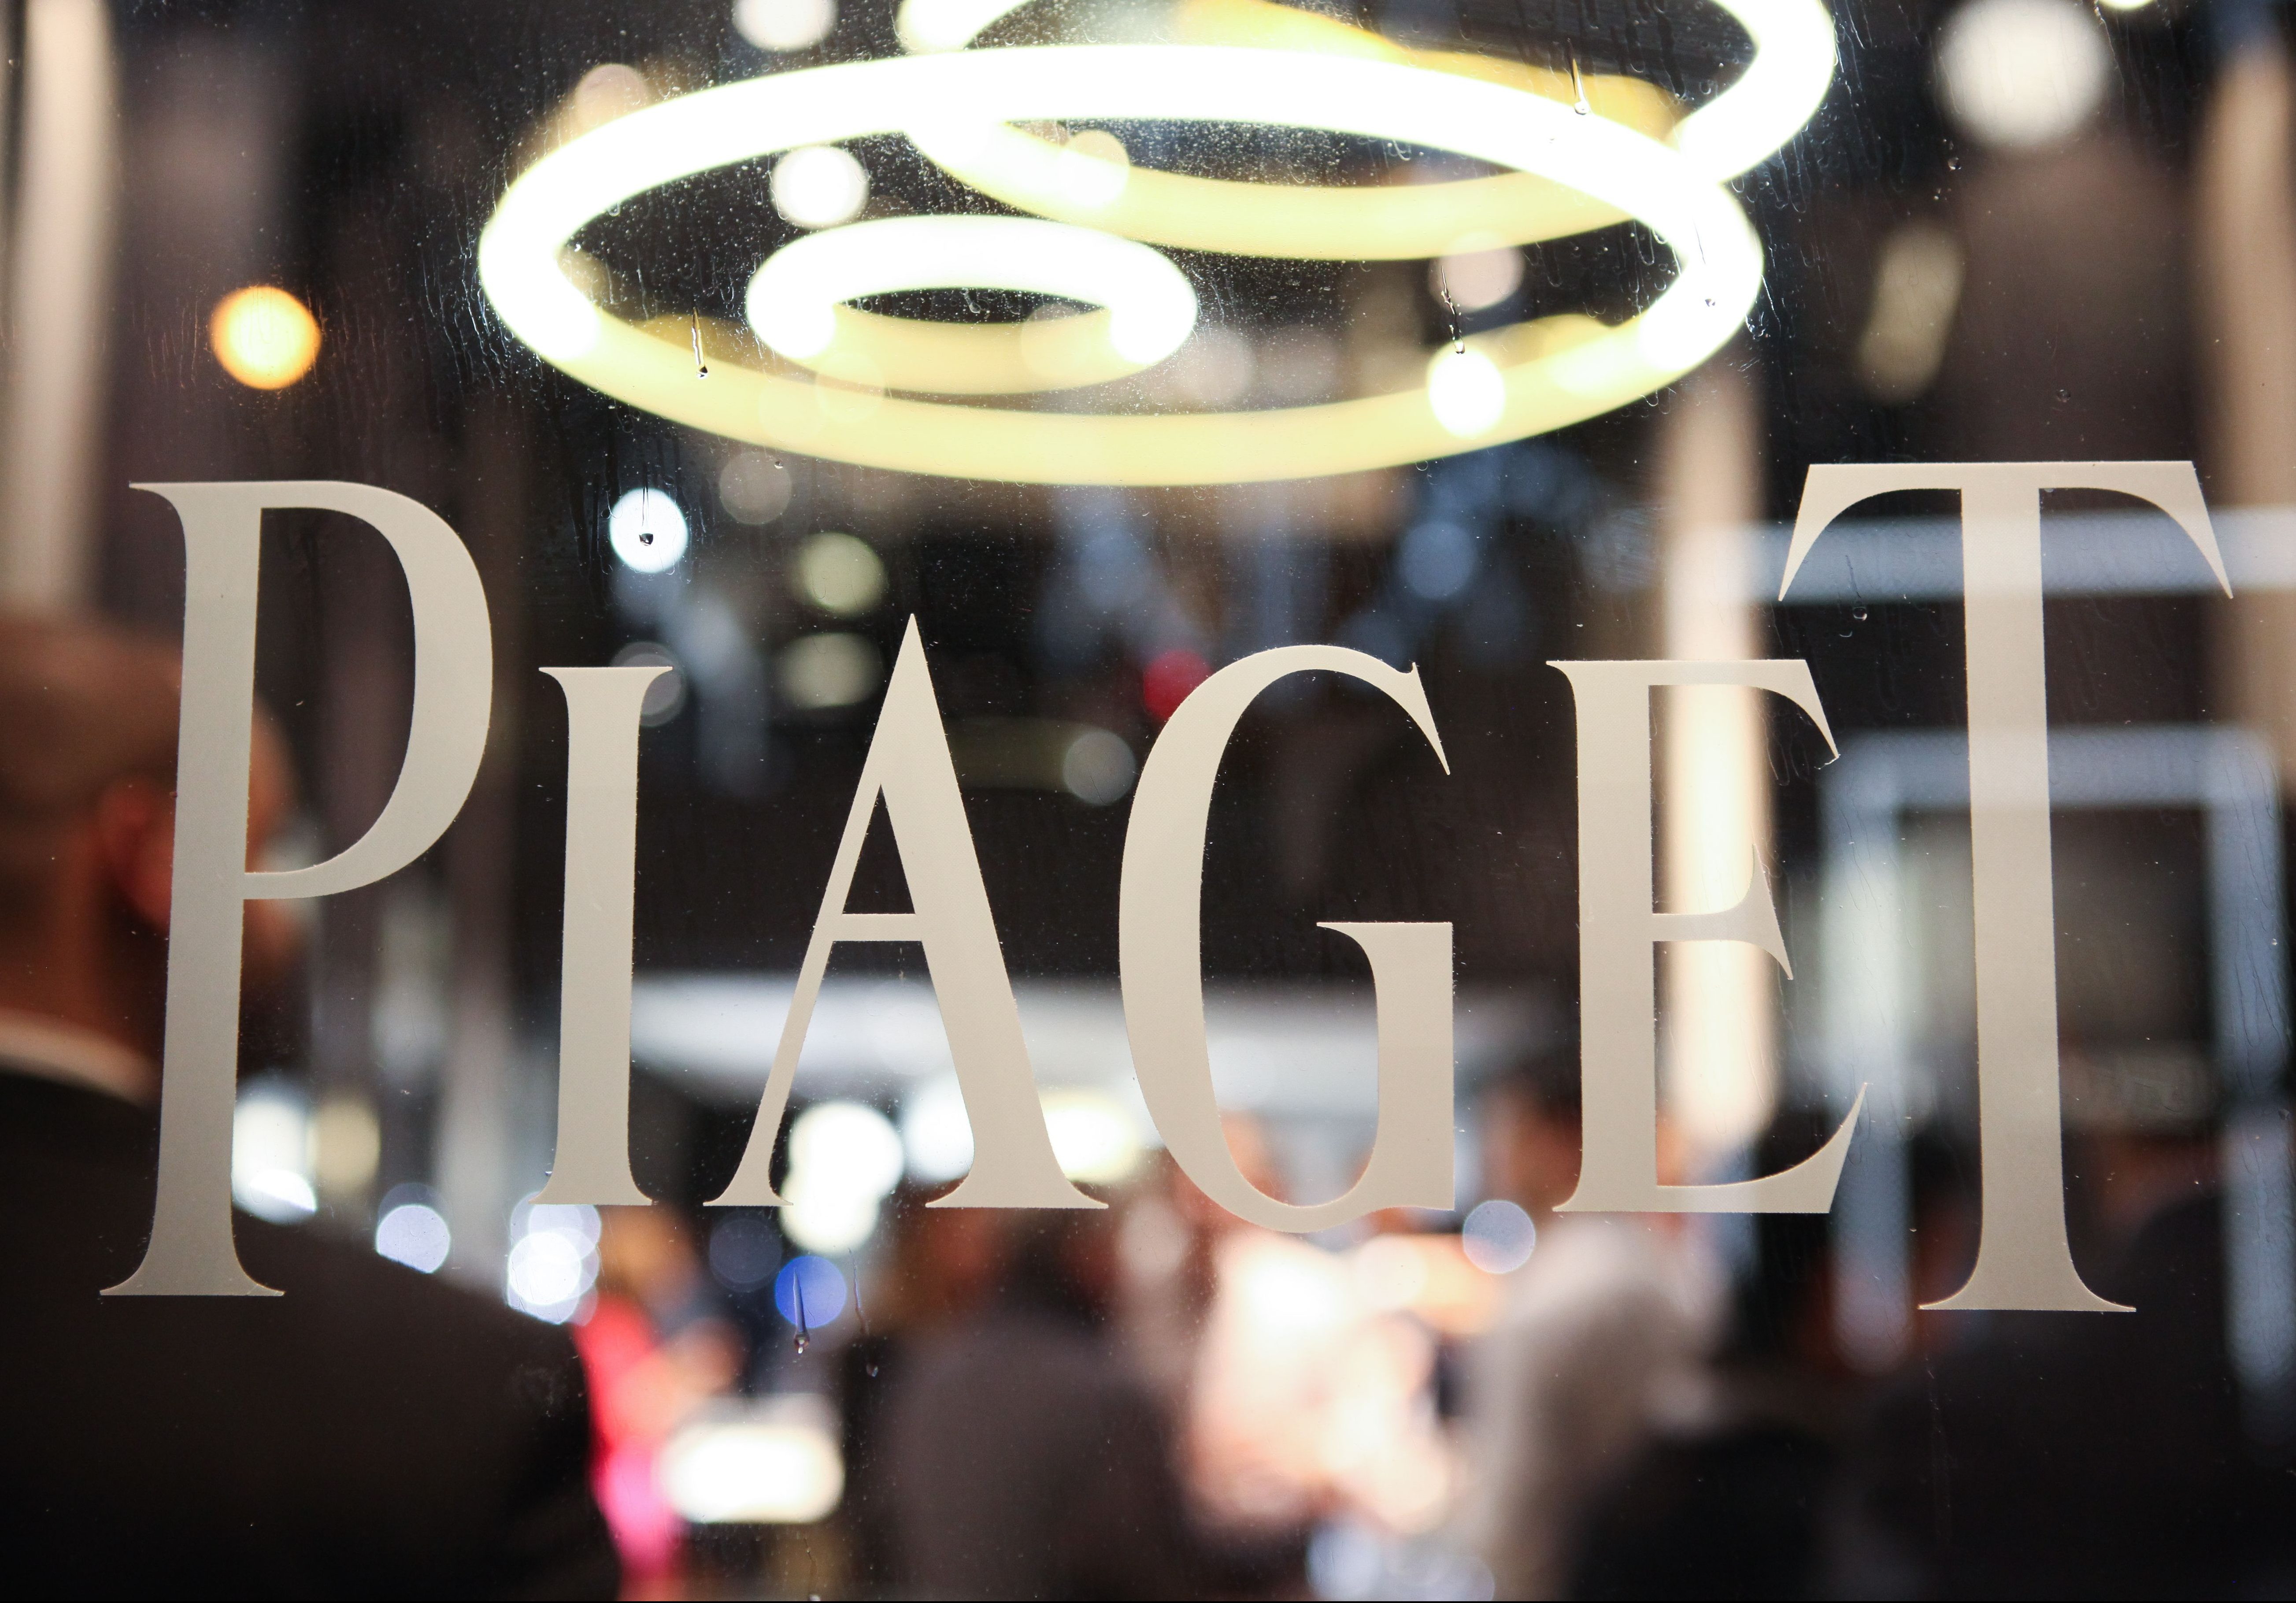 Richemont is seeking damages from Dynasty Jewelry for copying the designs from three of its brands, including Piaget.